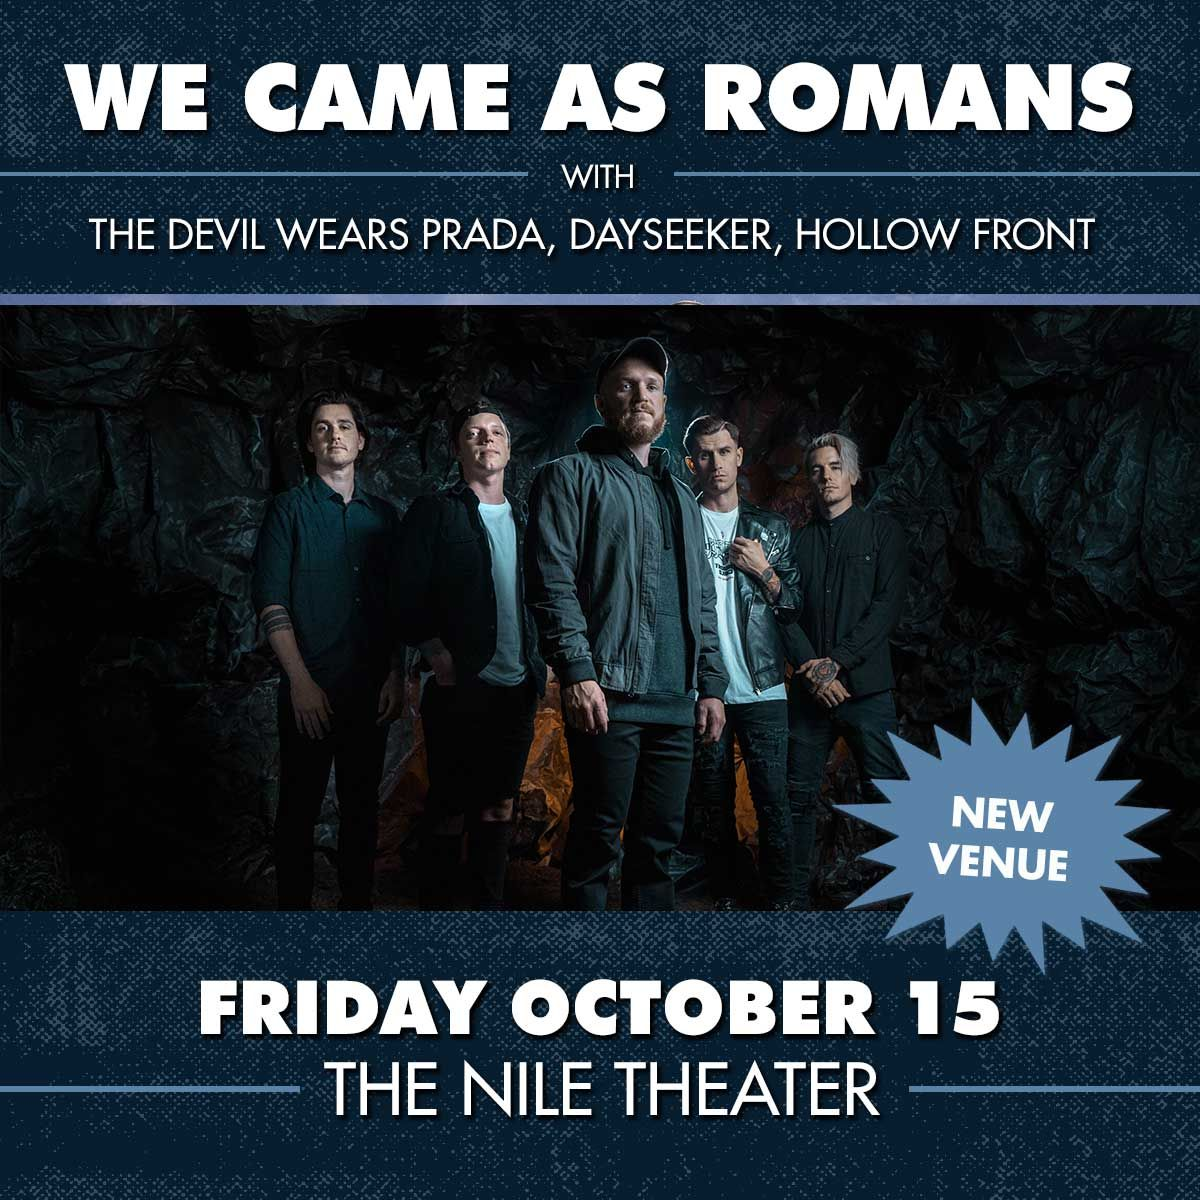 WE CAME AS ROMANS: